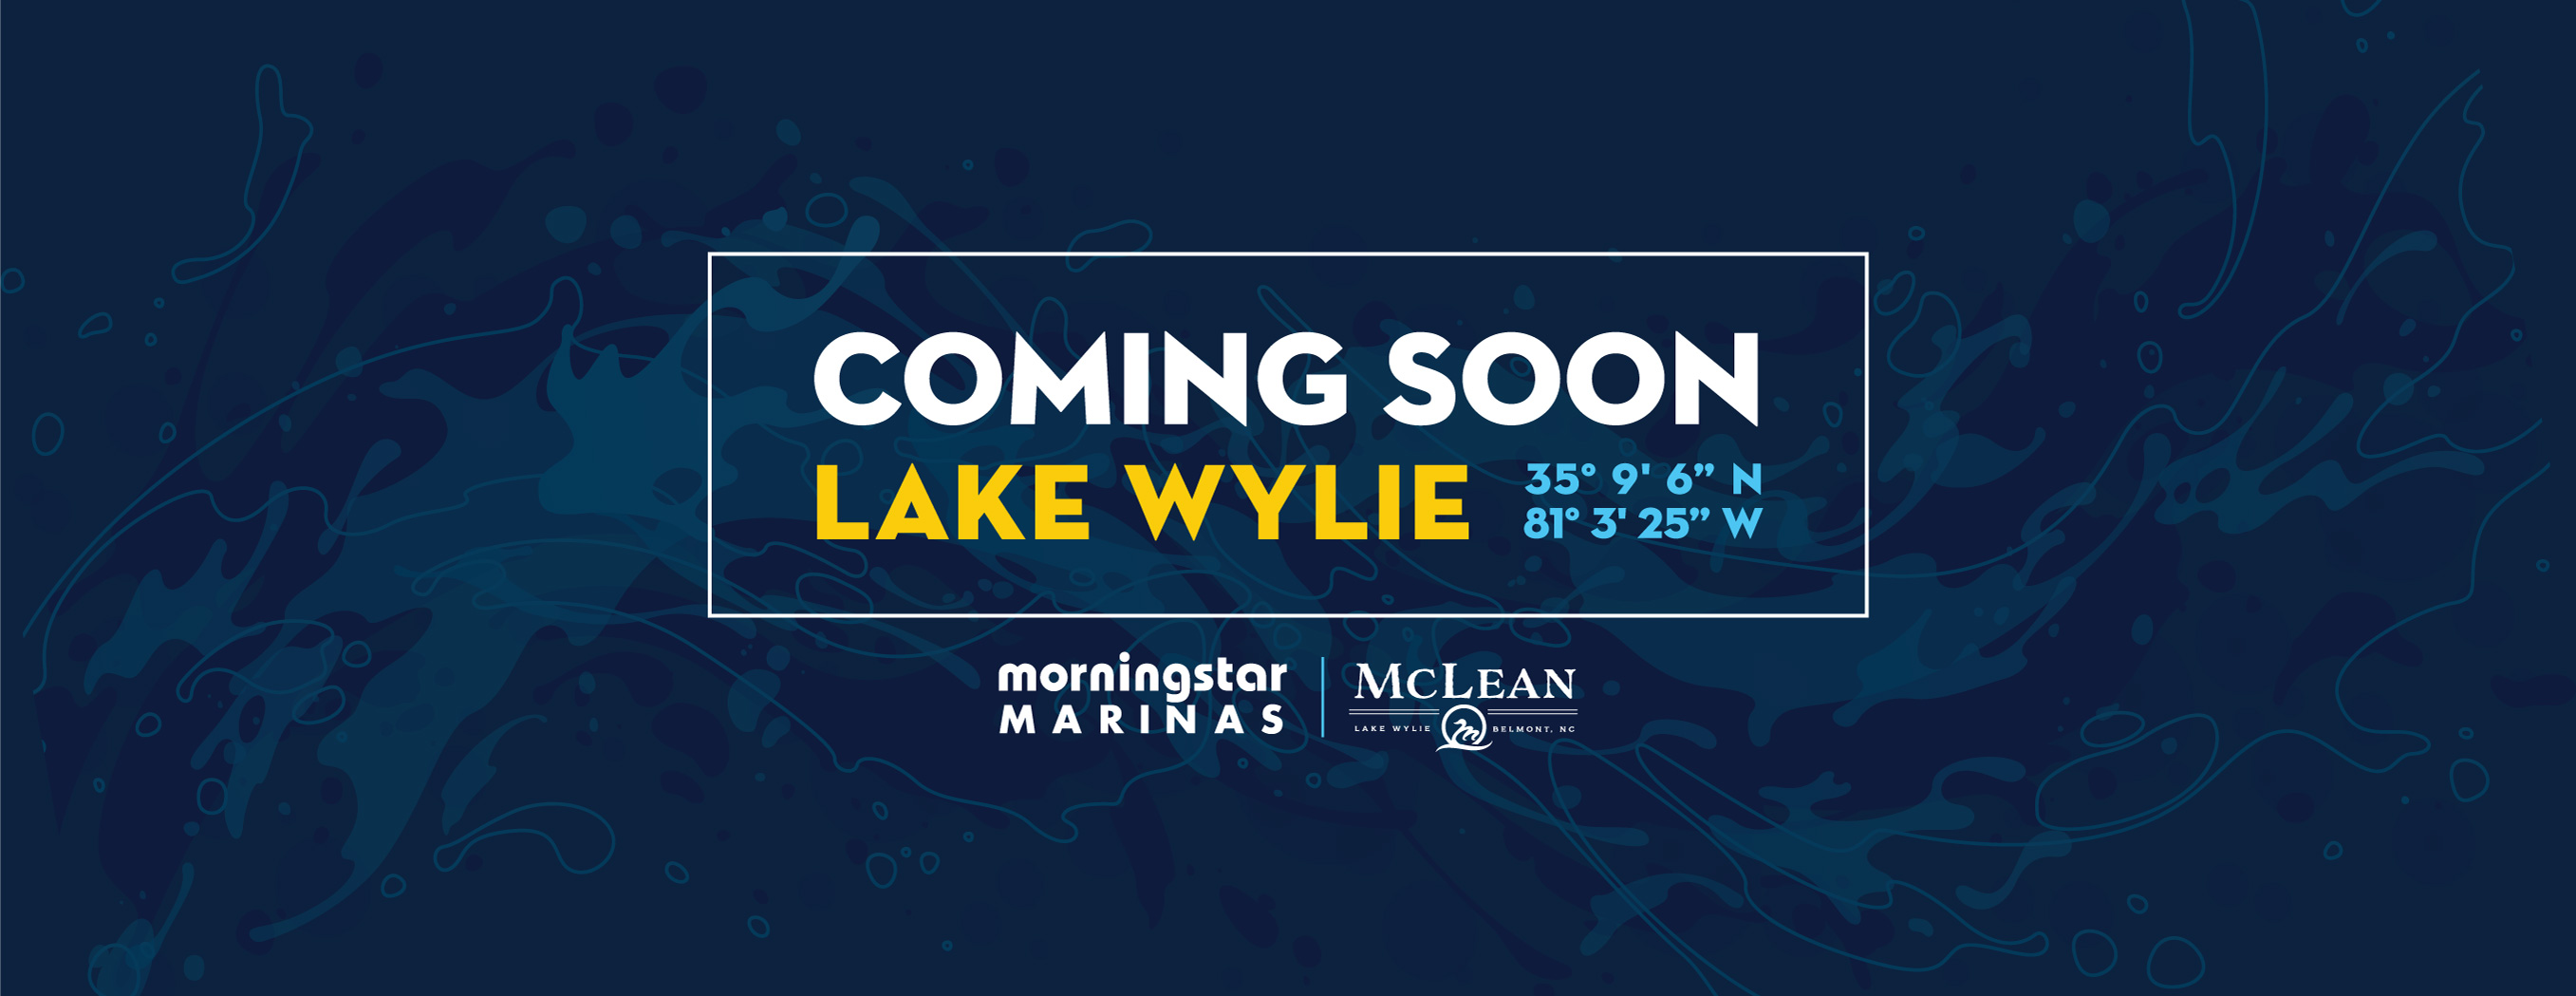 Morningstar Marinas Coming Soon to Lake Wylie